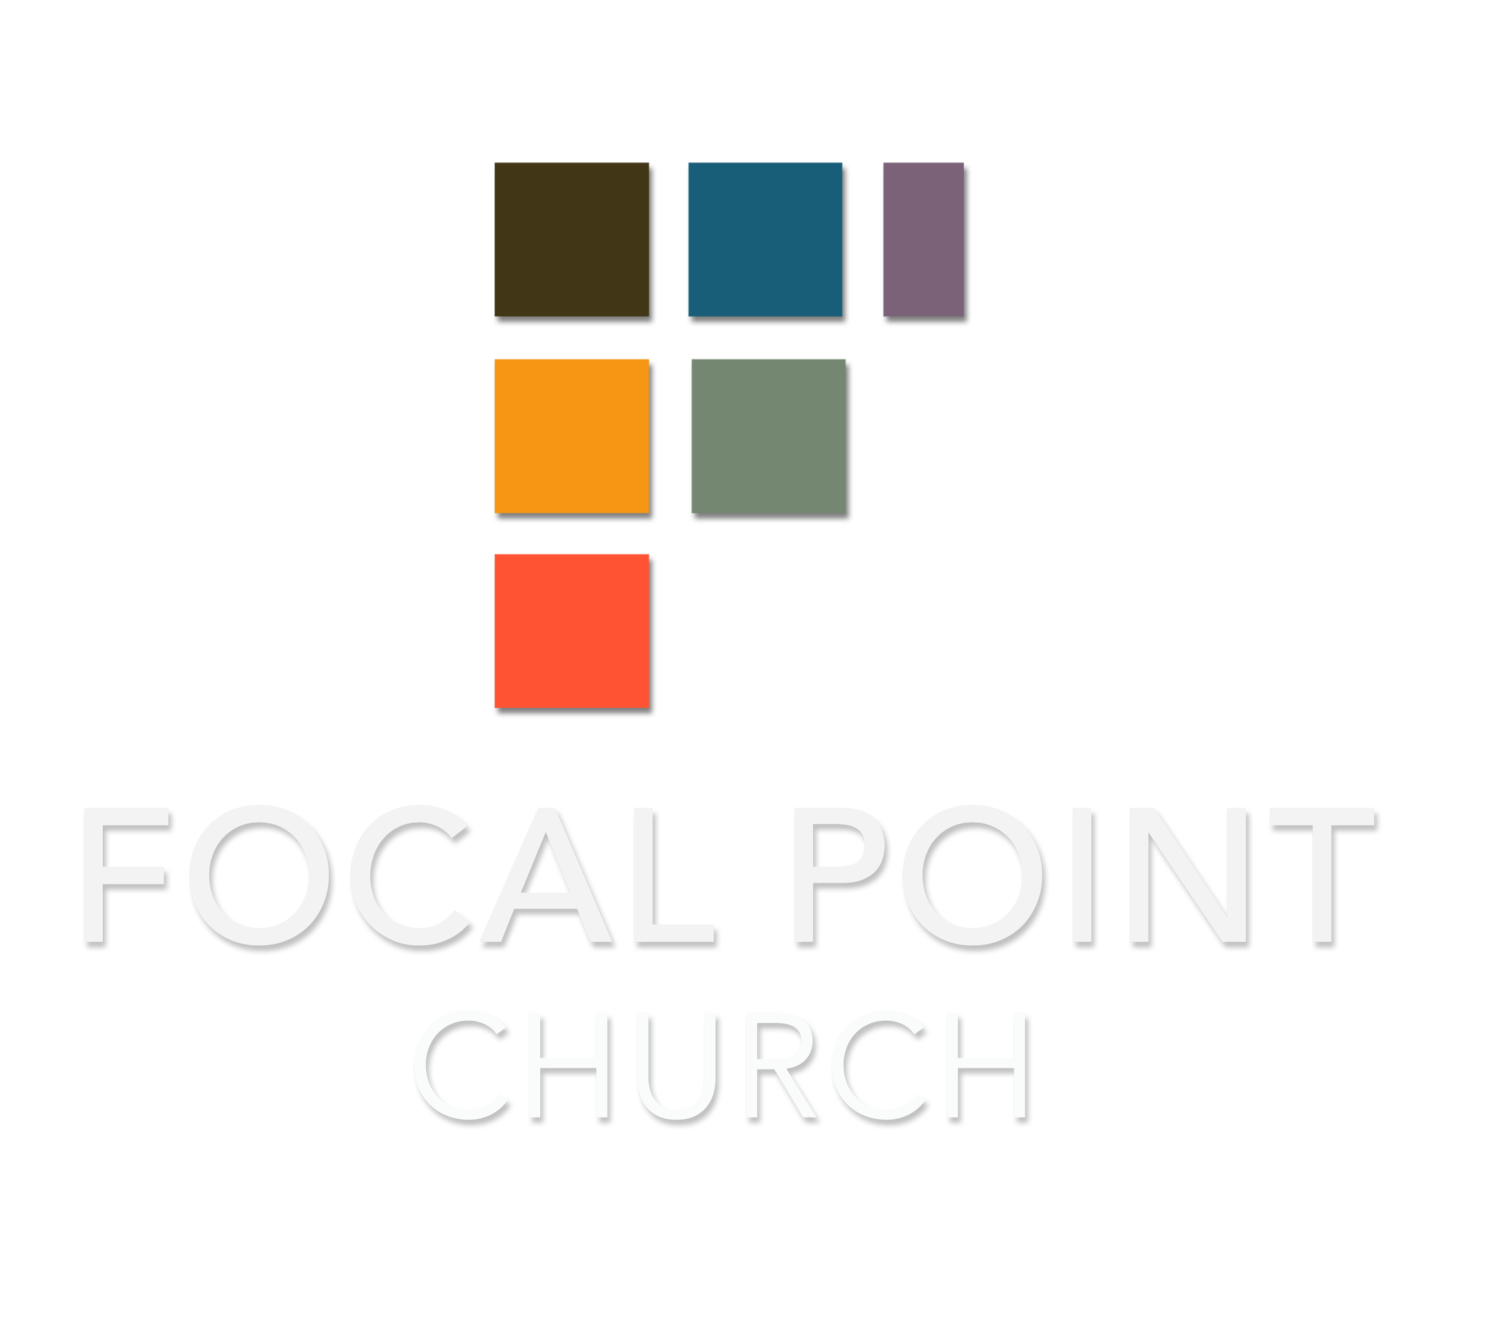 Focal Point Church